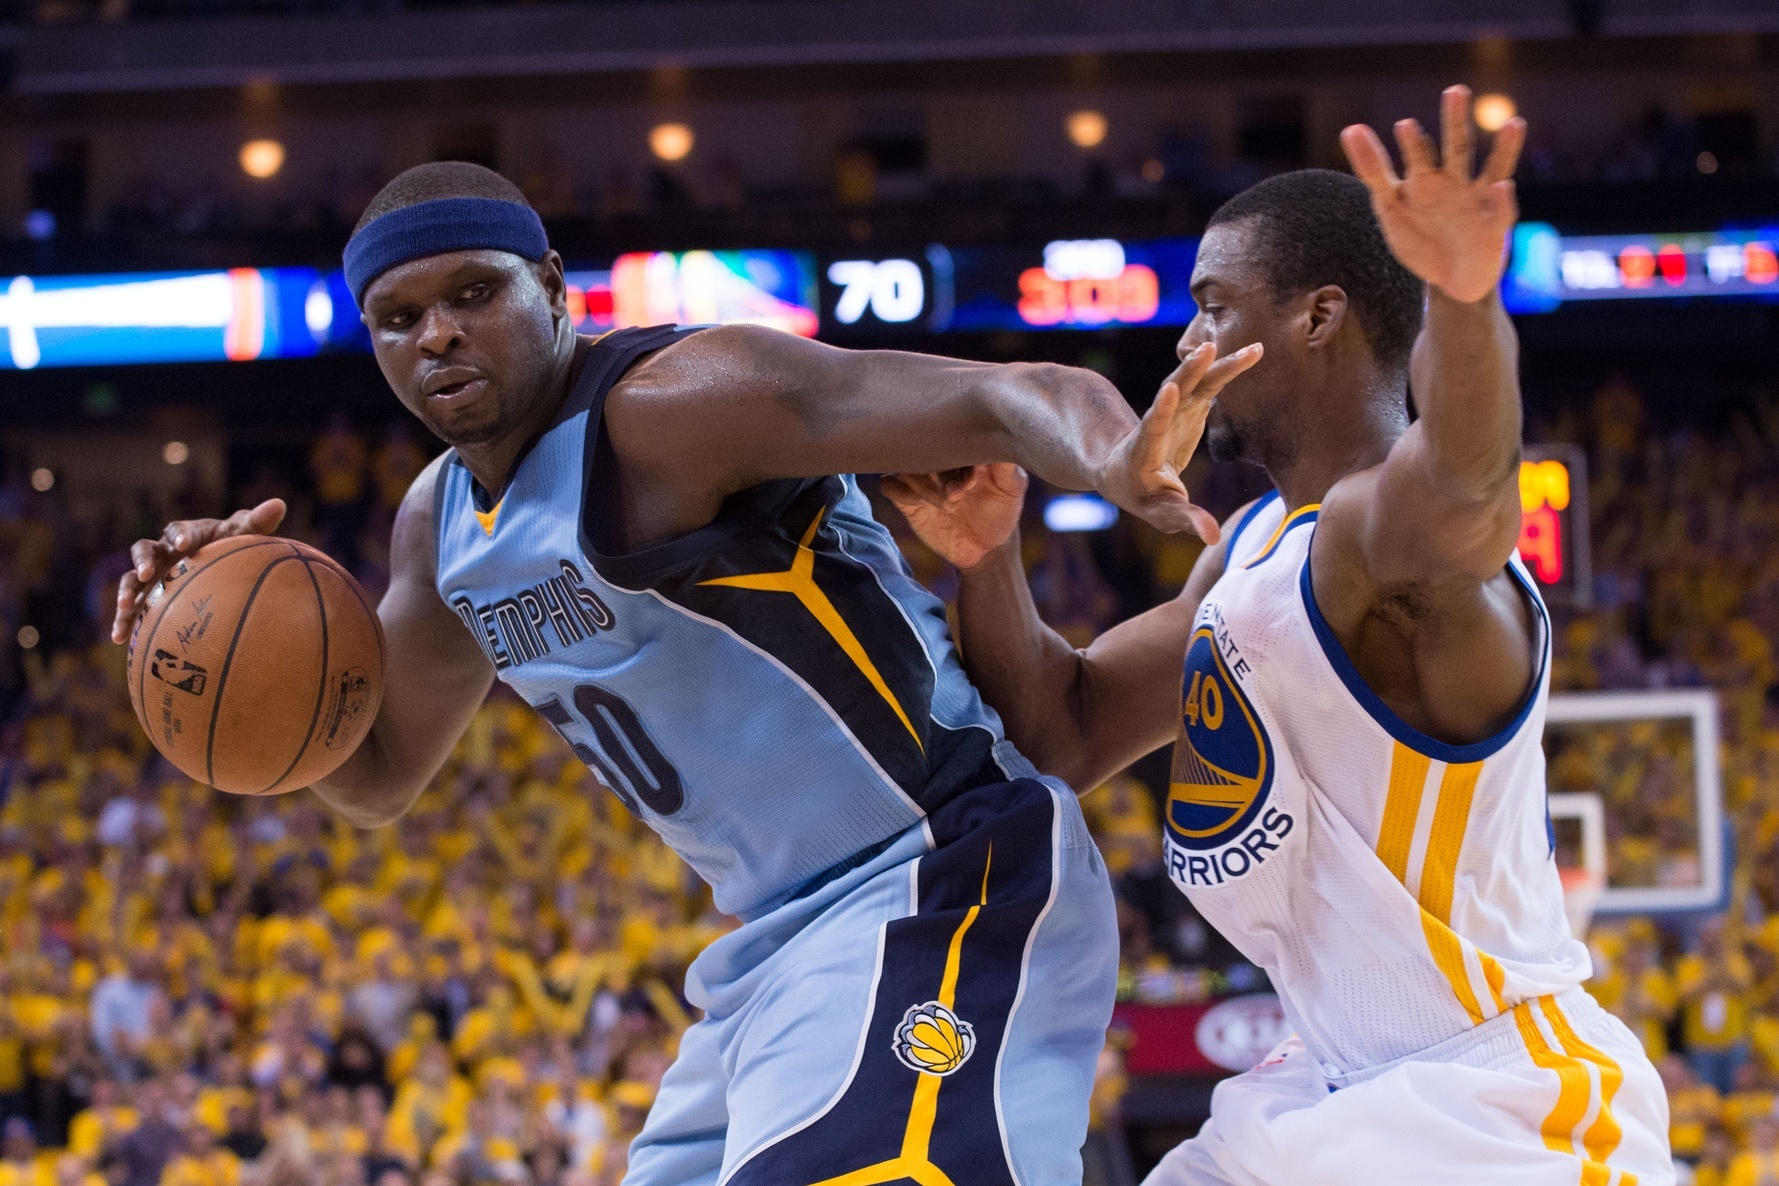 Zach randolph memphis grizzlies - This Is Roughly As Polite As Z Bo Gets Which Is Something You Should Absolutely Not Take Up With Z Bo Photo By Kyle Terada Usa Today Sports